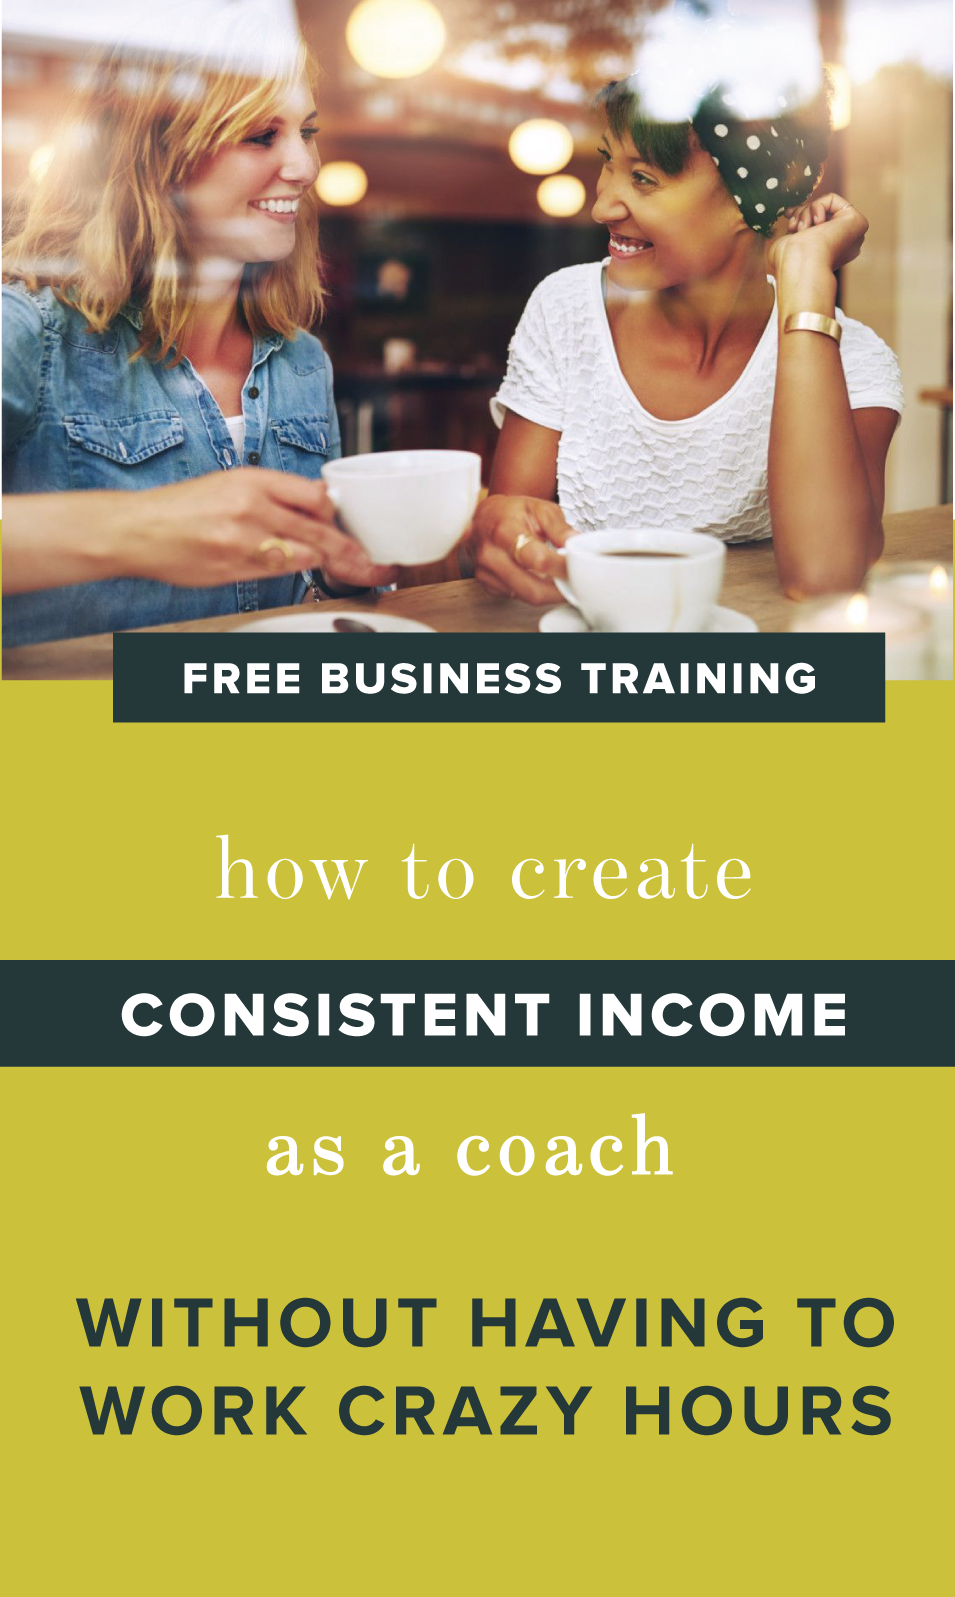 Free Business Training for Coaches #lifecoachingtools Life coaching tools, health coach, life coach logos, coaching business, life coaching tools worksheets, life coach, life coaching printables, coaching tips, coach quotes, quotes for coaches, coaching tools, beachbody coach tips, beachbody coaching marketing, life coaching business, health coach business, consulting business, beach body coach business, health coach tools, health coach business, health coaching, health coach printables, fitness #lifecoachingtools